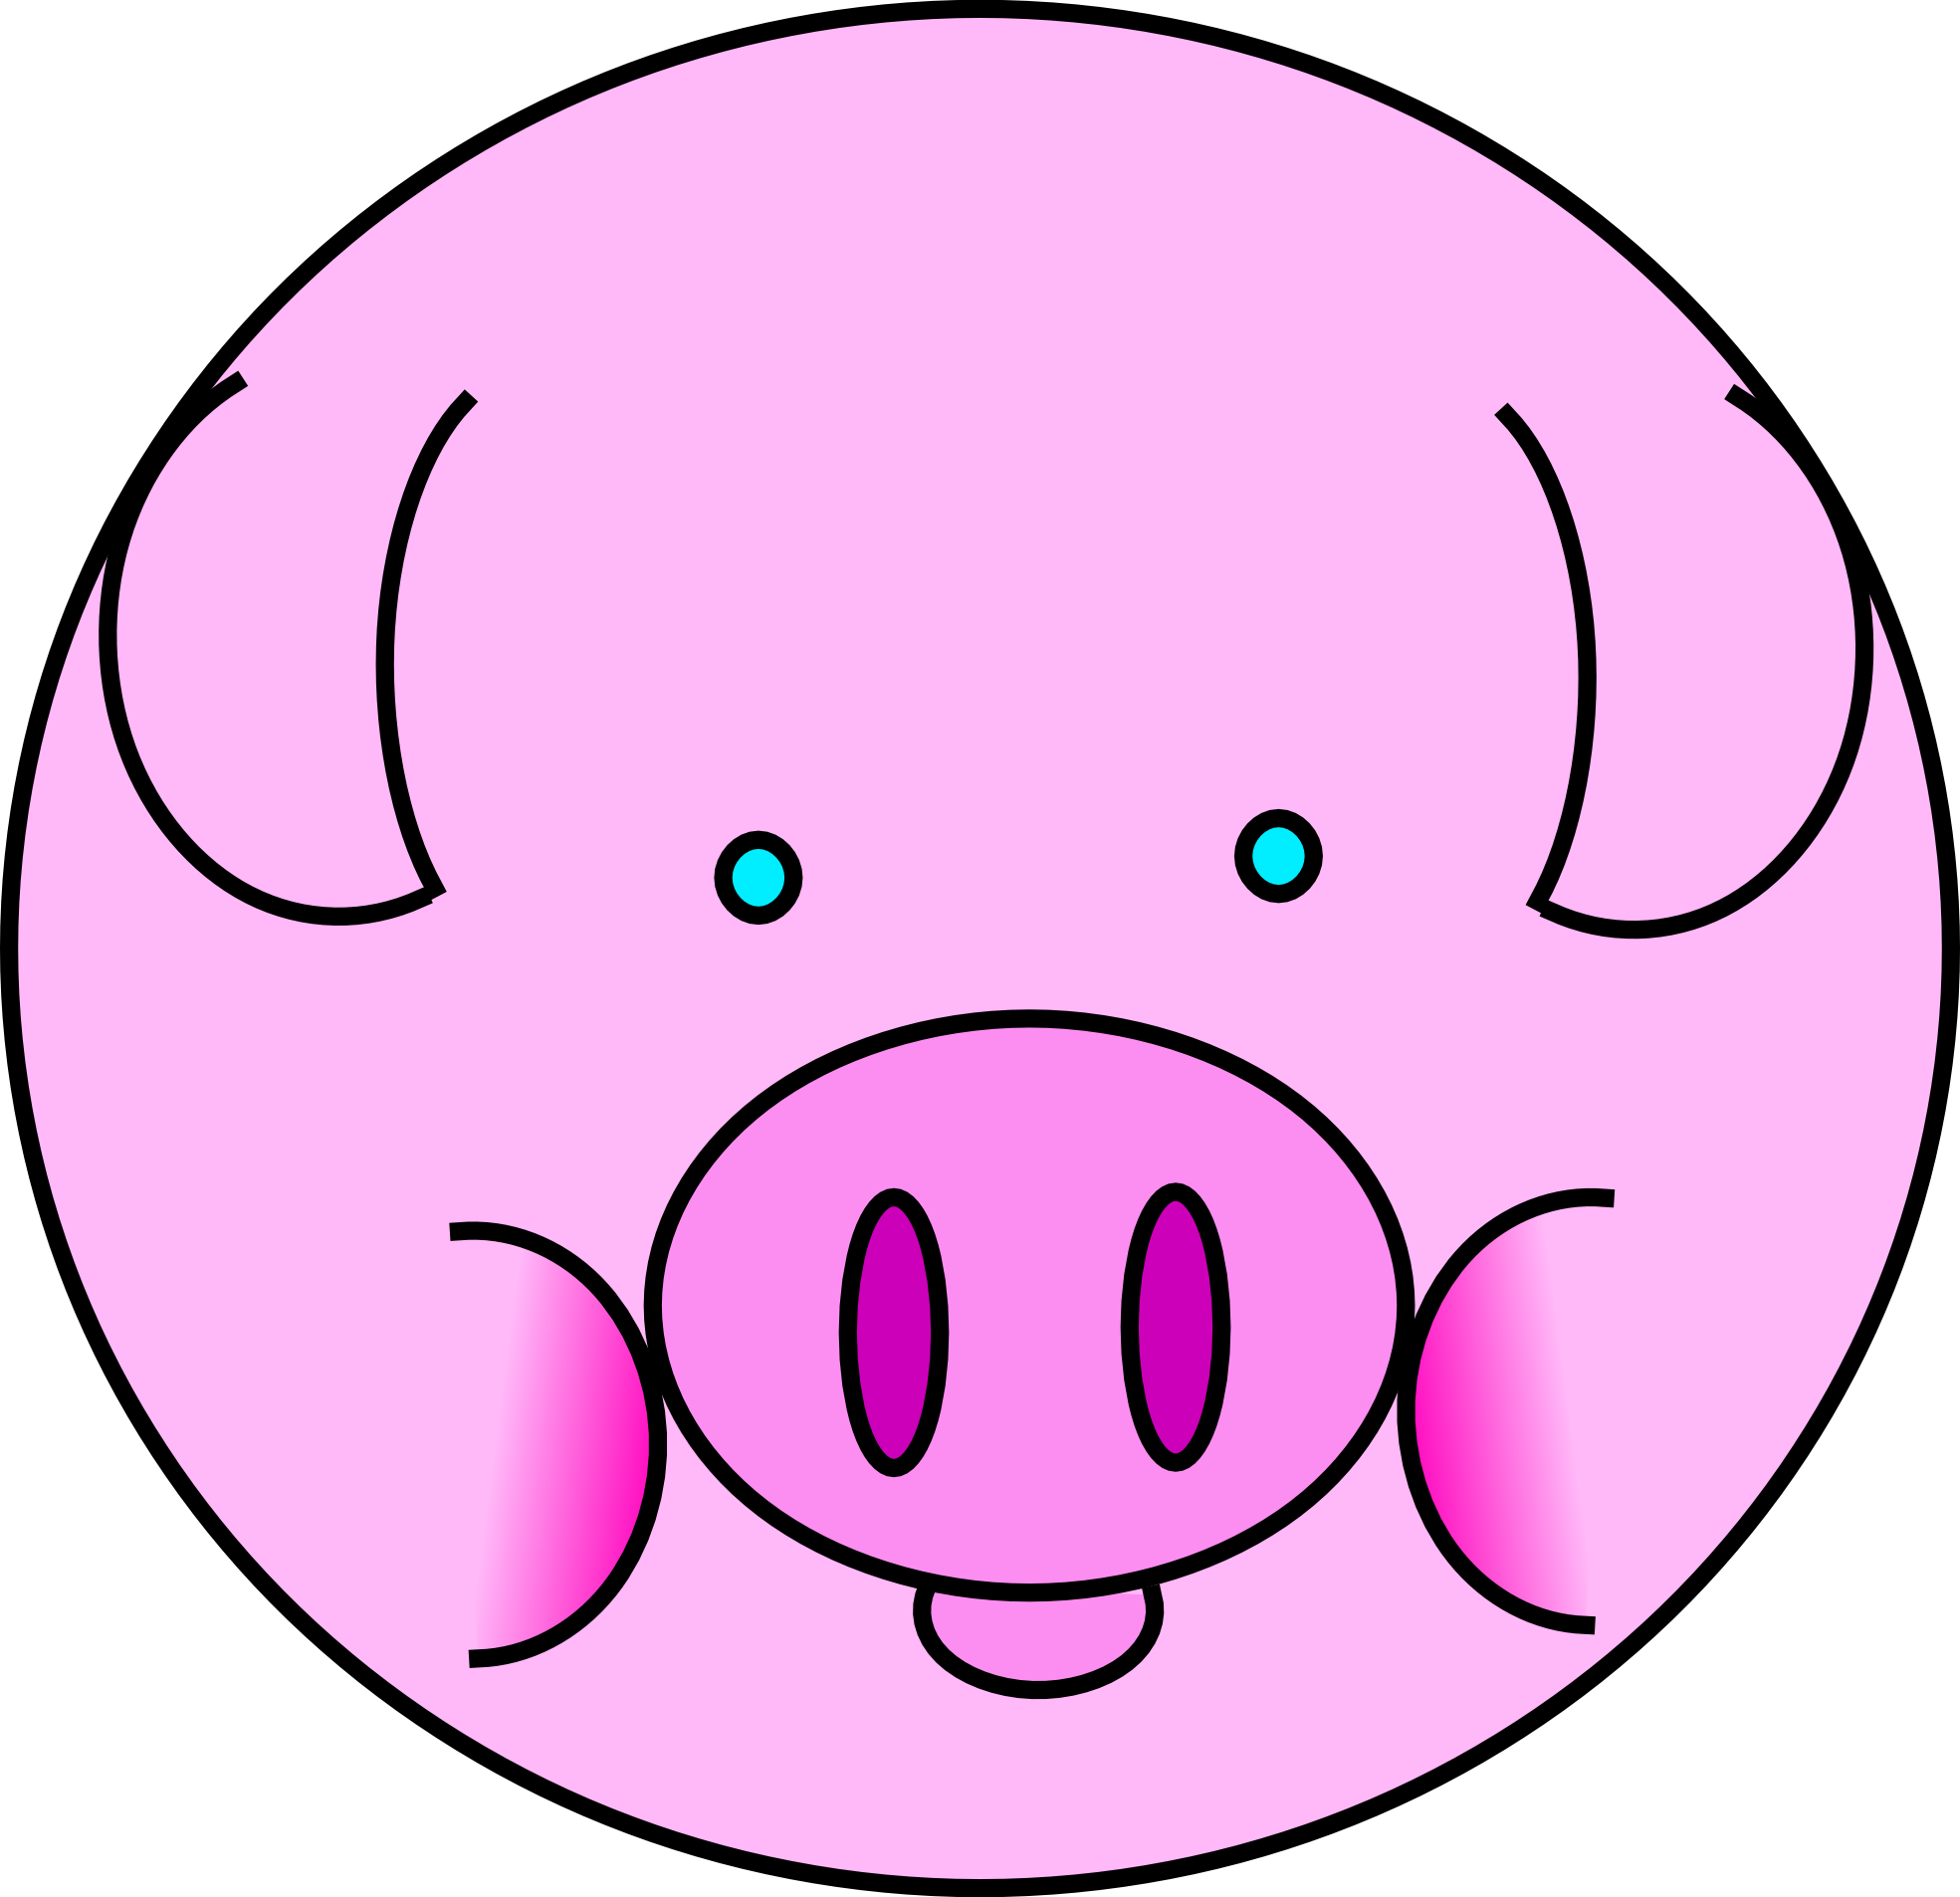 Pig clipart black and white. Free images clipartix